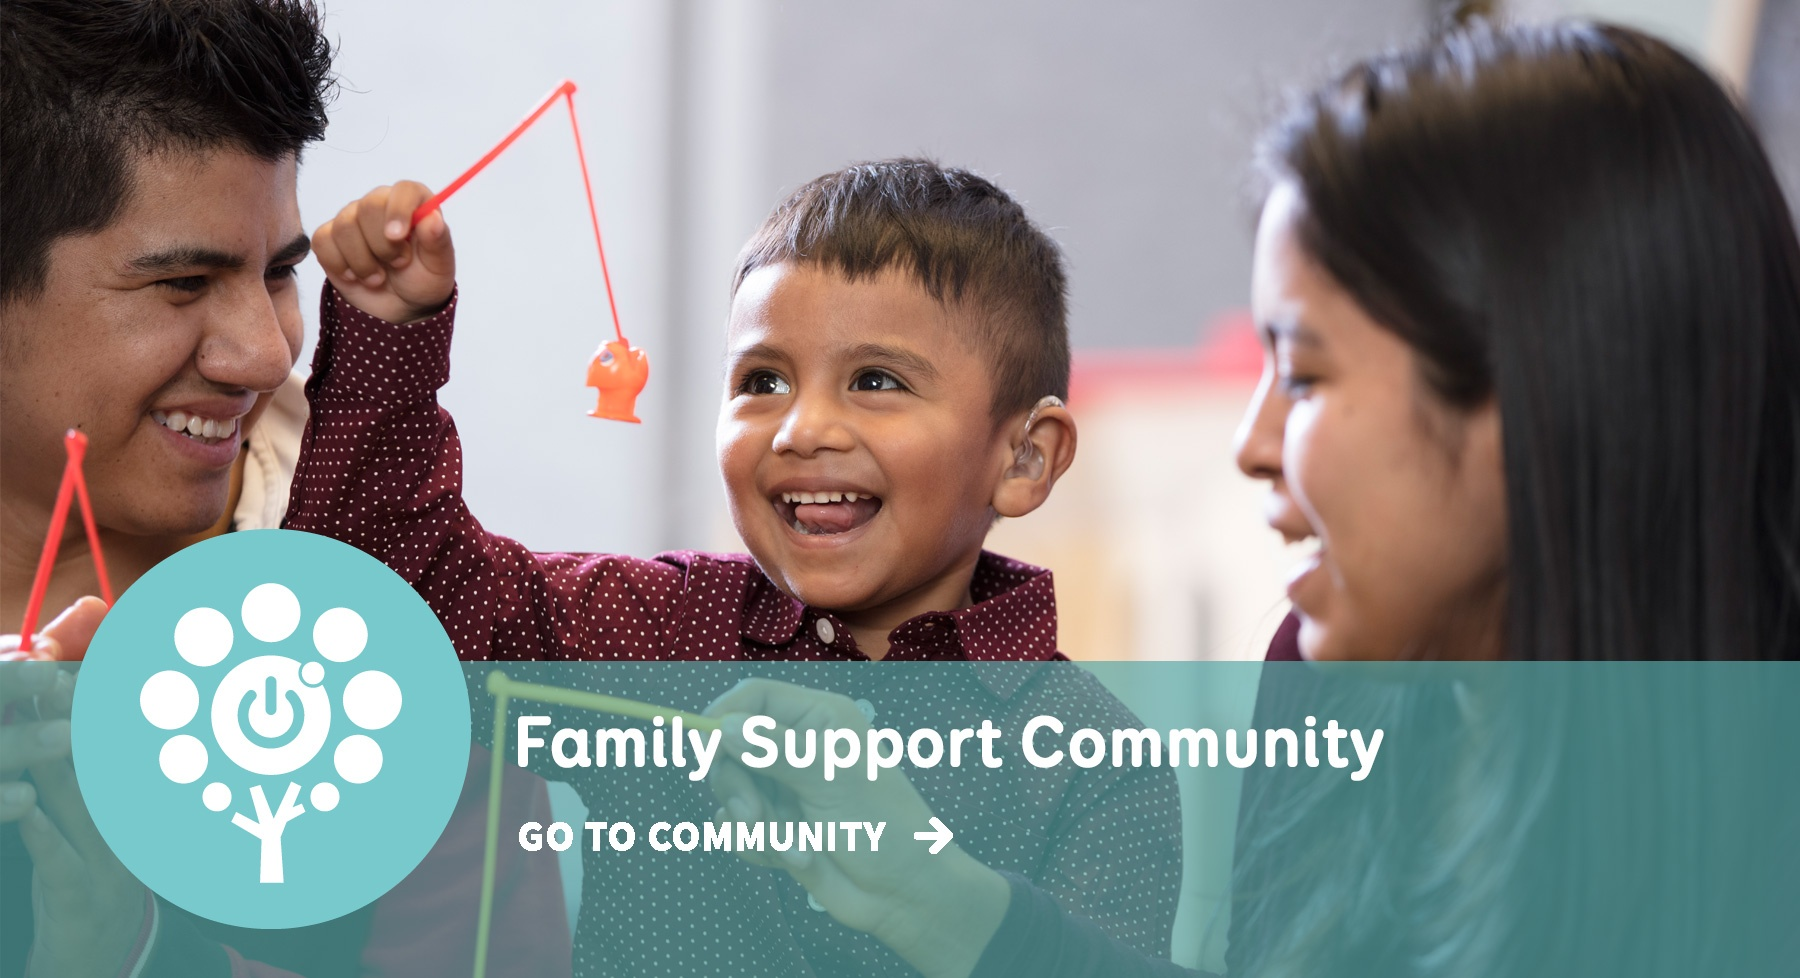 Family Support Community